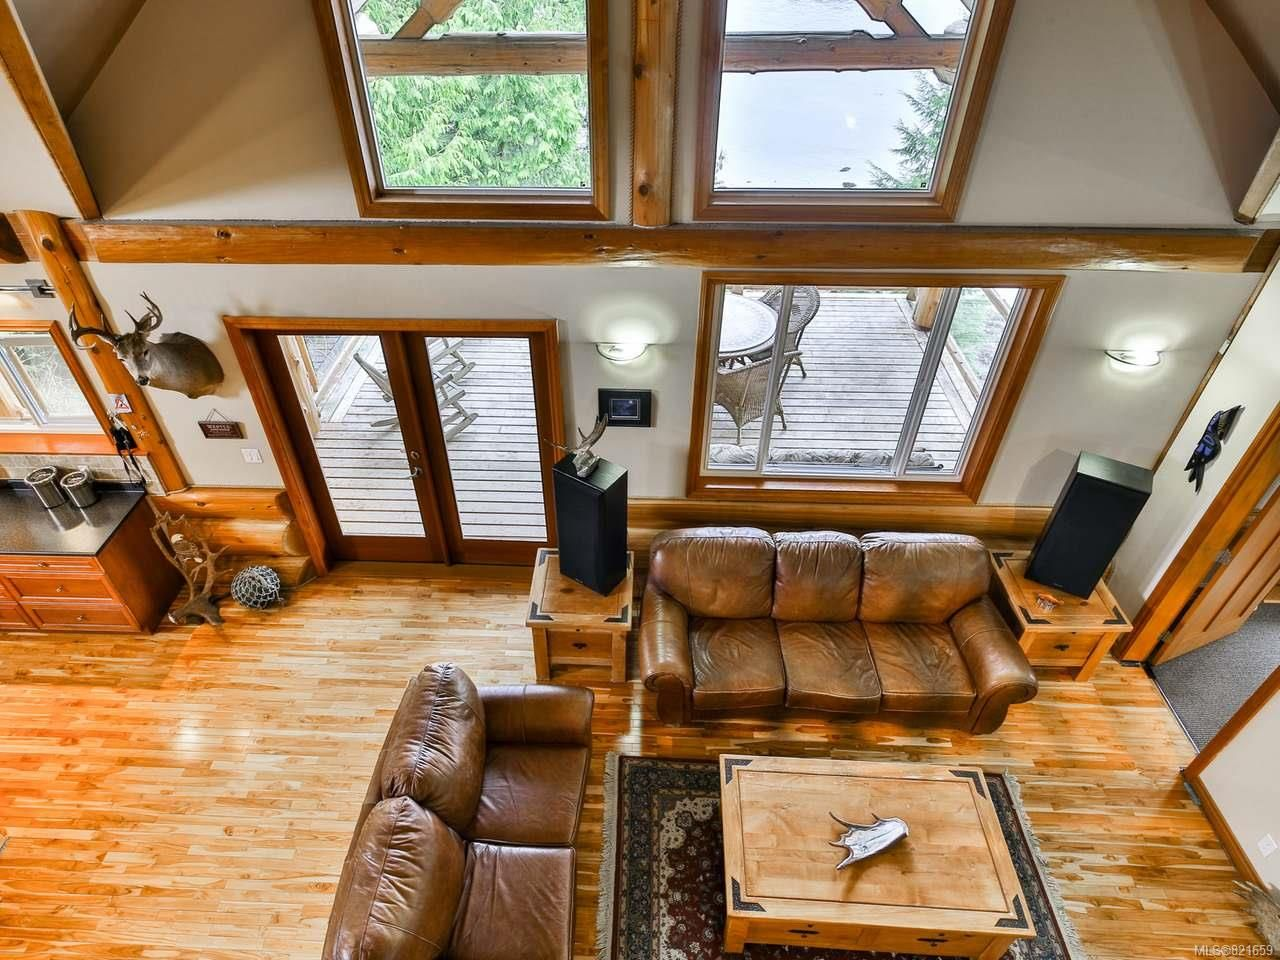 Photo 33: Photos: 1049 Helen Rd in UCLUELET: PA Ucluelet House for sale (Port Alberni)  : MLS®# 821659